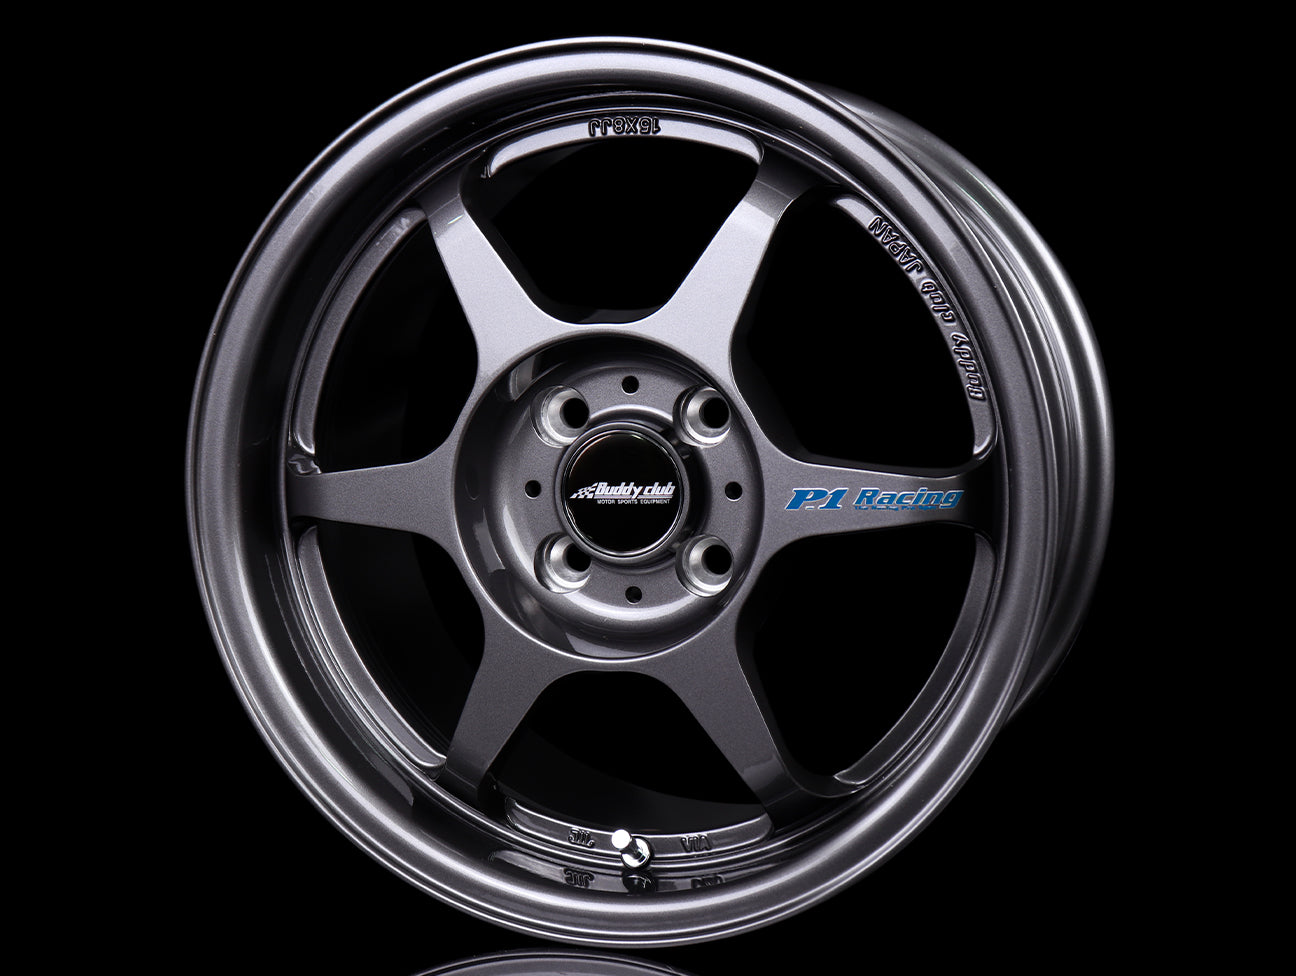 Buddy Club SF Wheels - Gunmetal 15x8 / 5x114 / +32